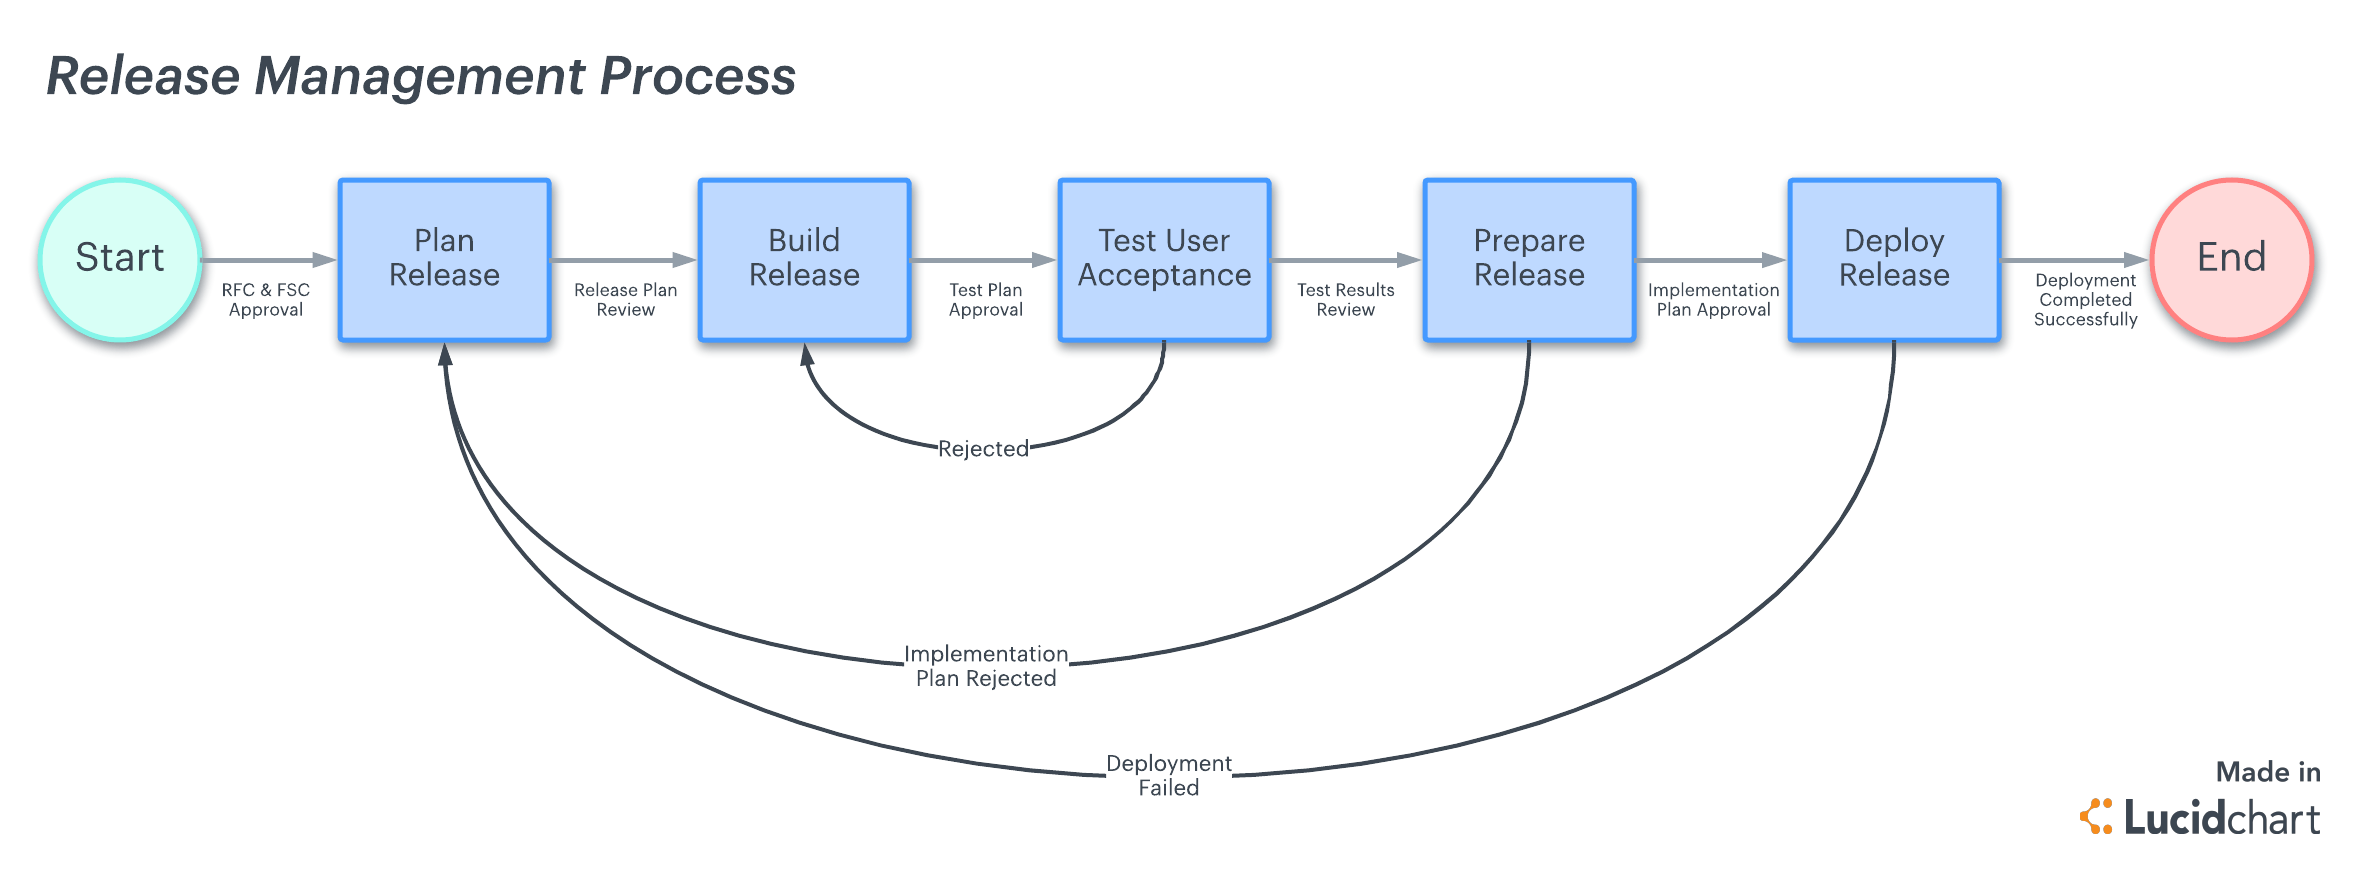 software release process flow diagram bt nte5 master socket wiring 5 steps to a successful management